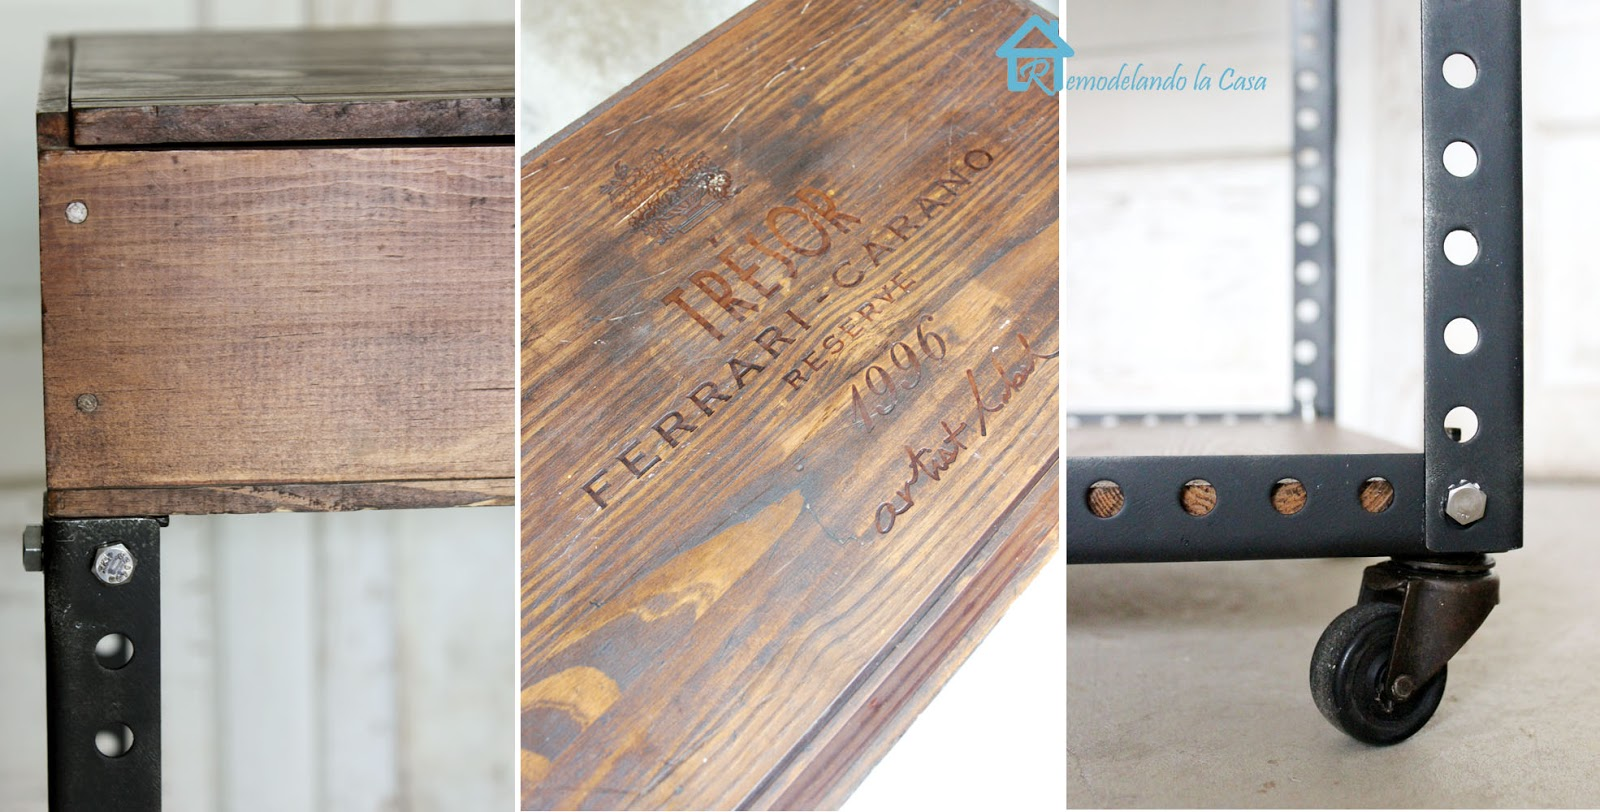 How to build a side table with wooden wine box and metal slats